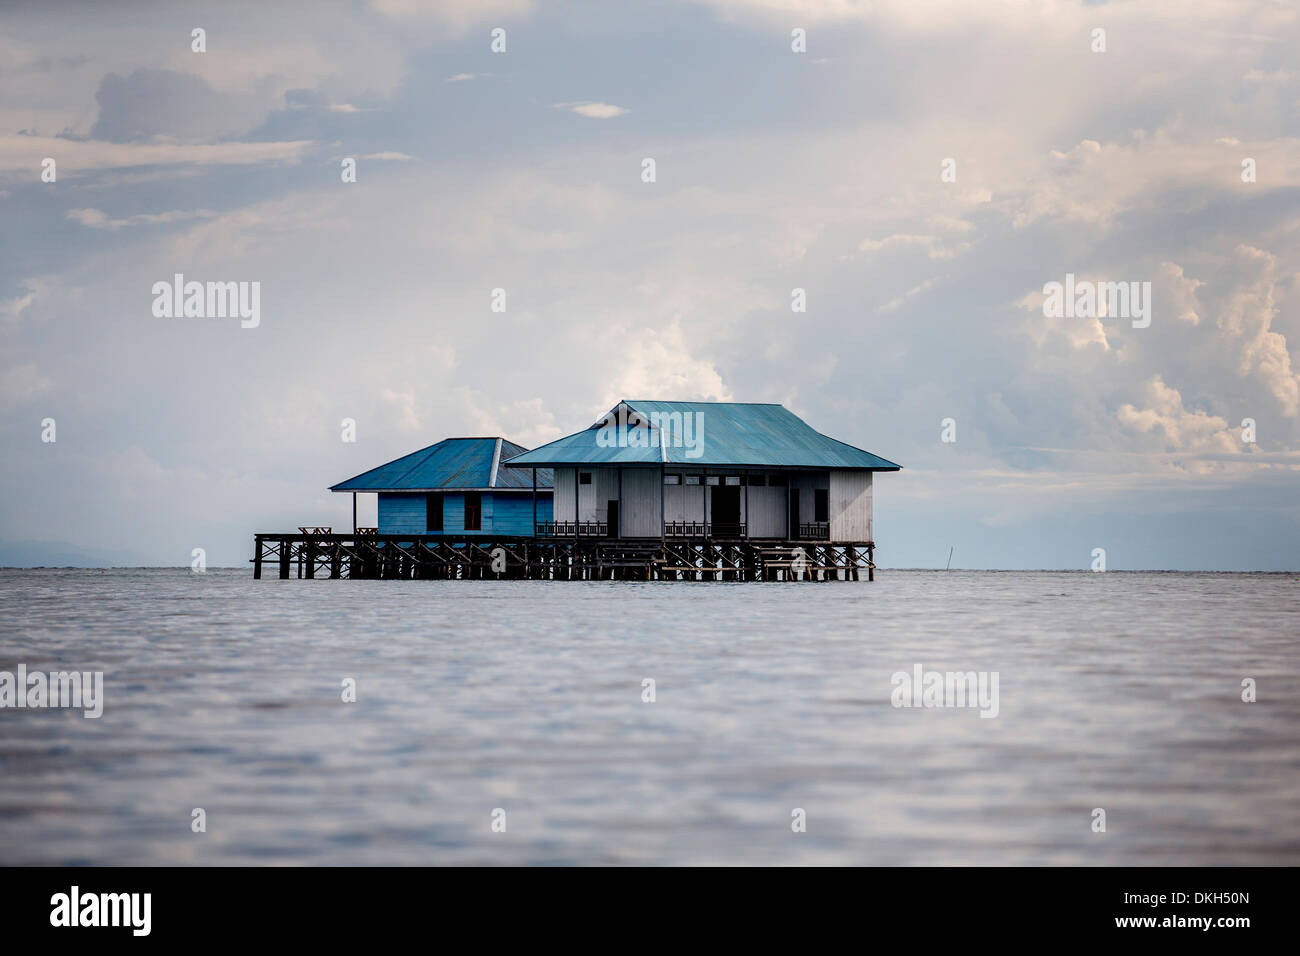 A house over the ocean, Togian Islands, Sulawesi, Indonesia, Southeast Asia, Asia Stock Photo